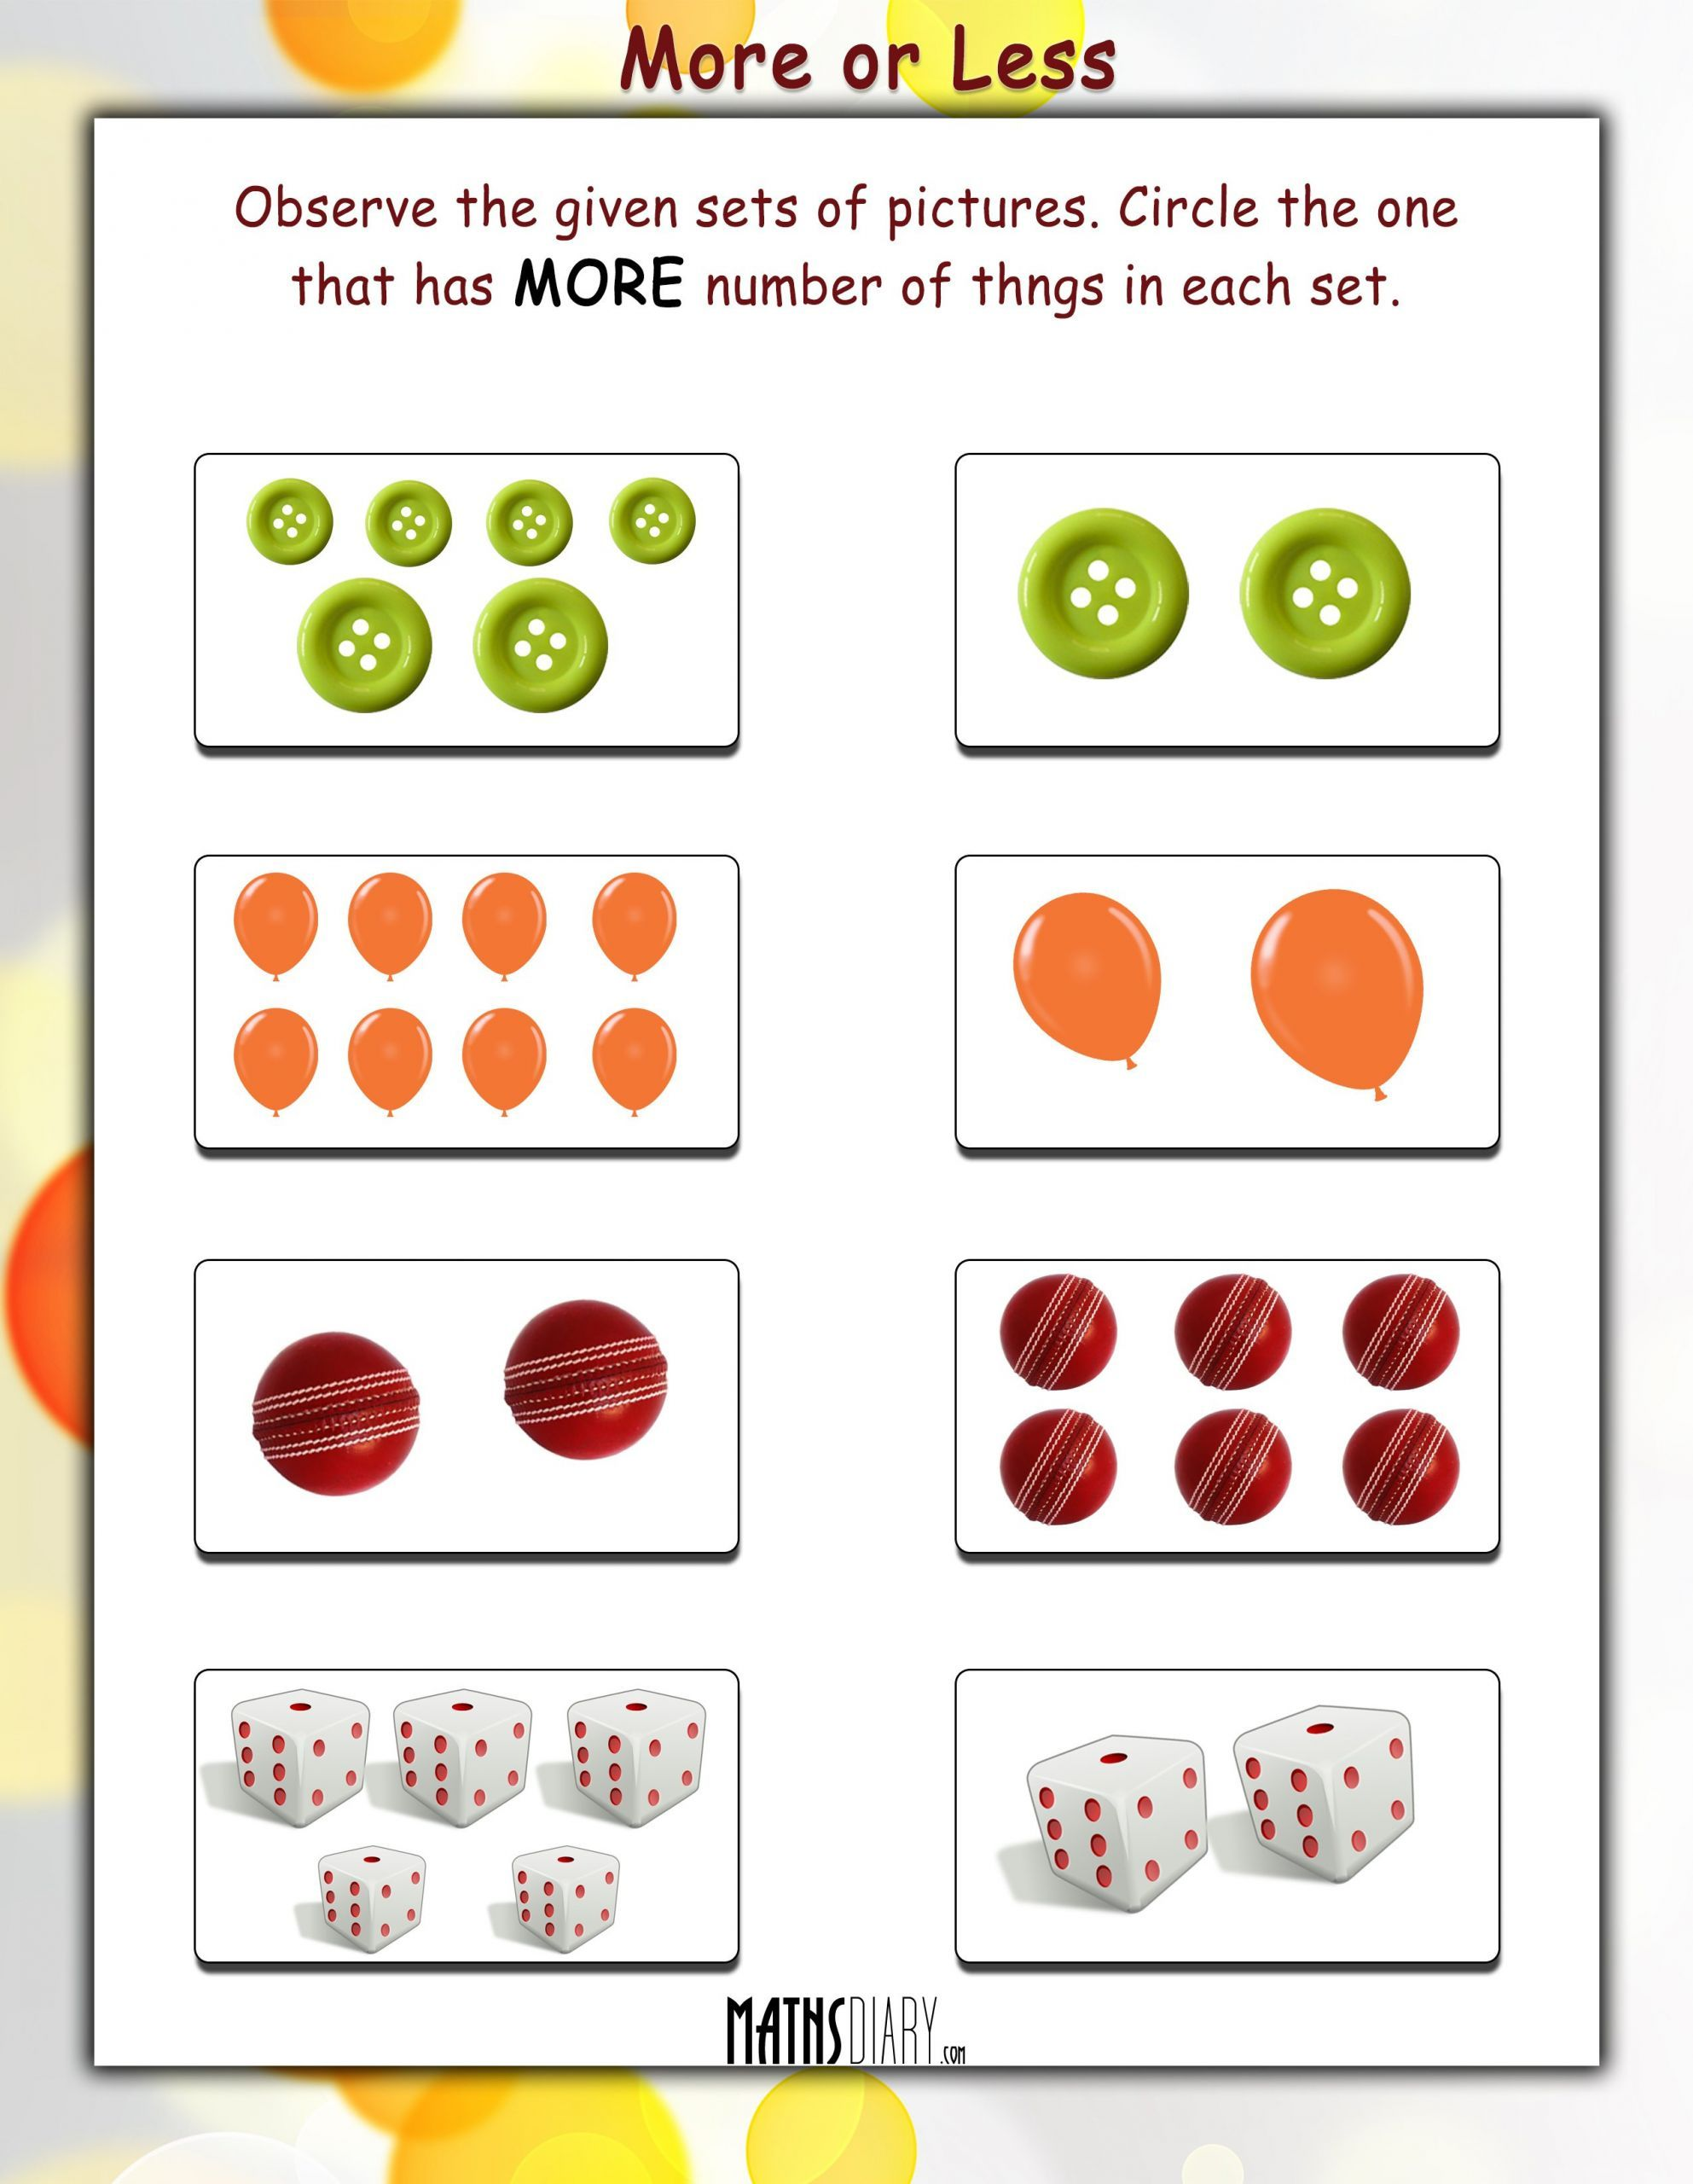 7 More Or Less Activity Worksheet In